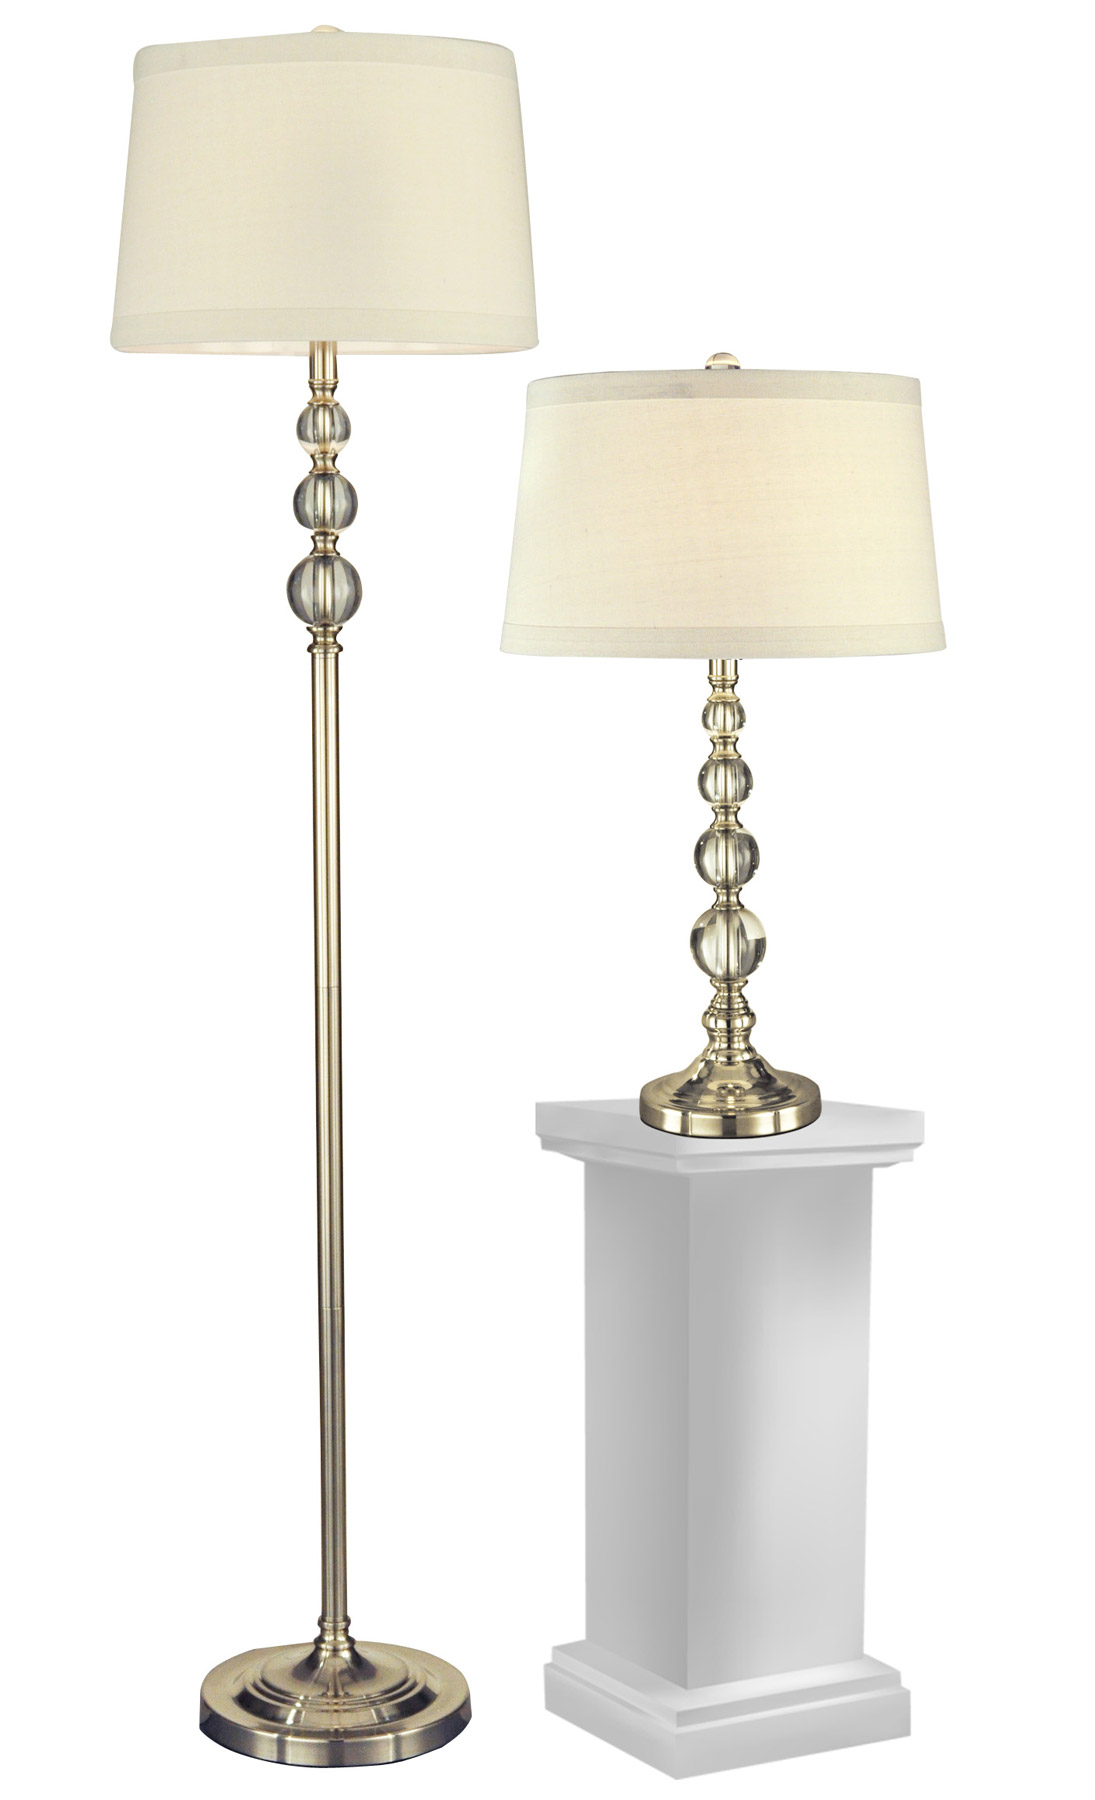 Tiffany gc12290 crystal optic orb table and floor lamp set 1 of each dale tiffany gc12290 crystal optic orb table and floor lamp set 1 of each aloadofball